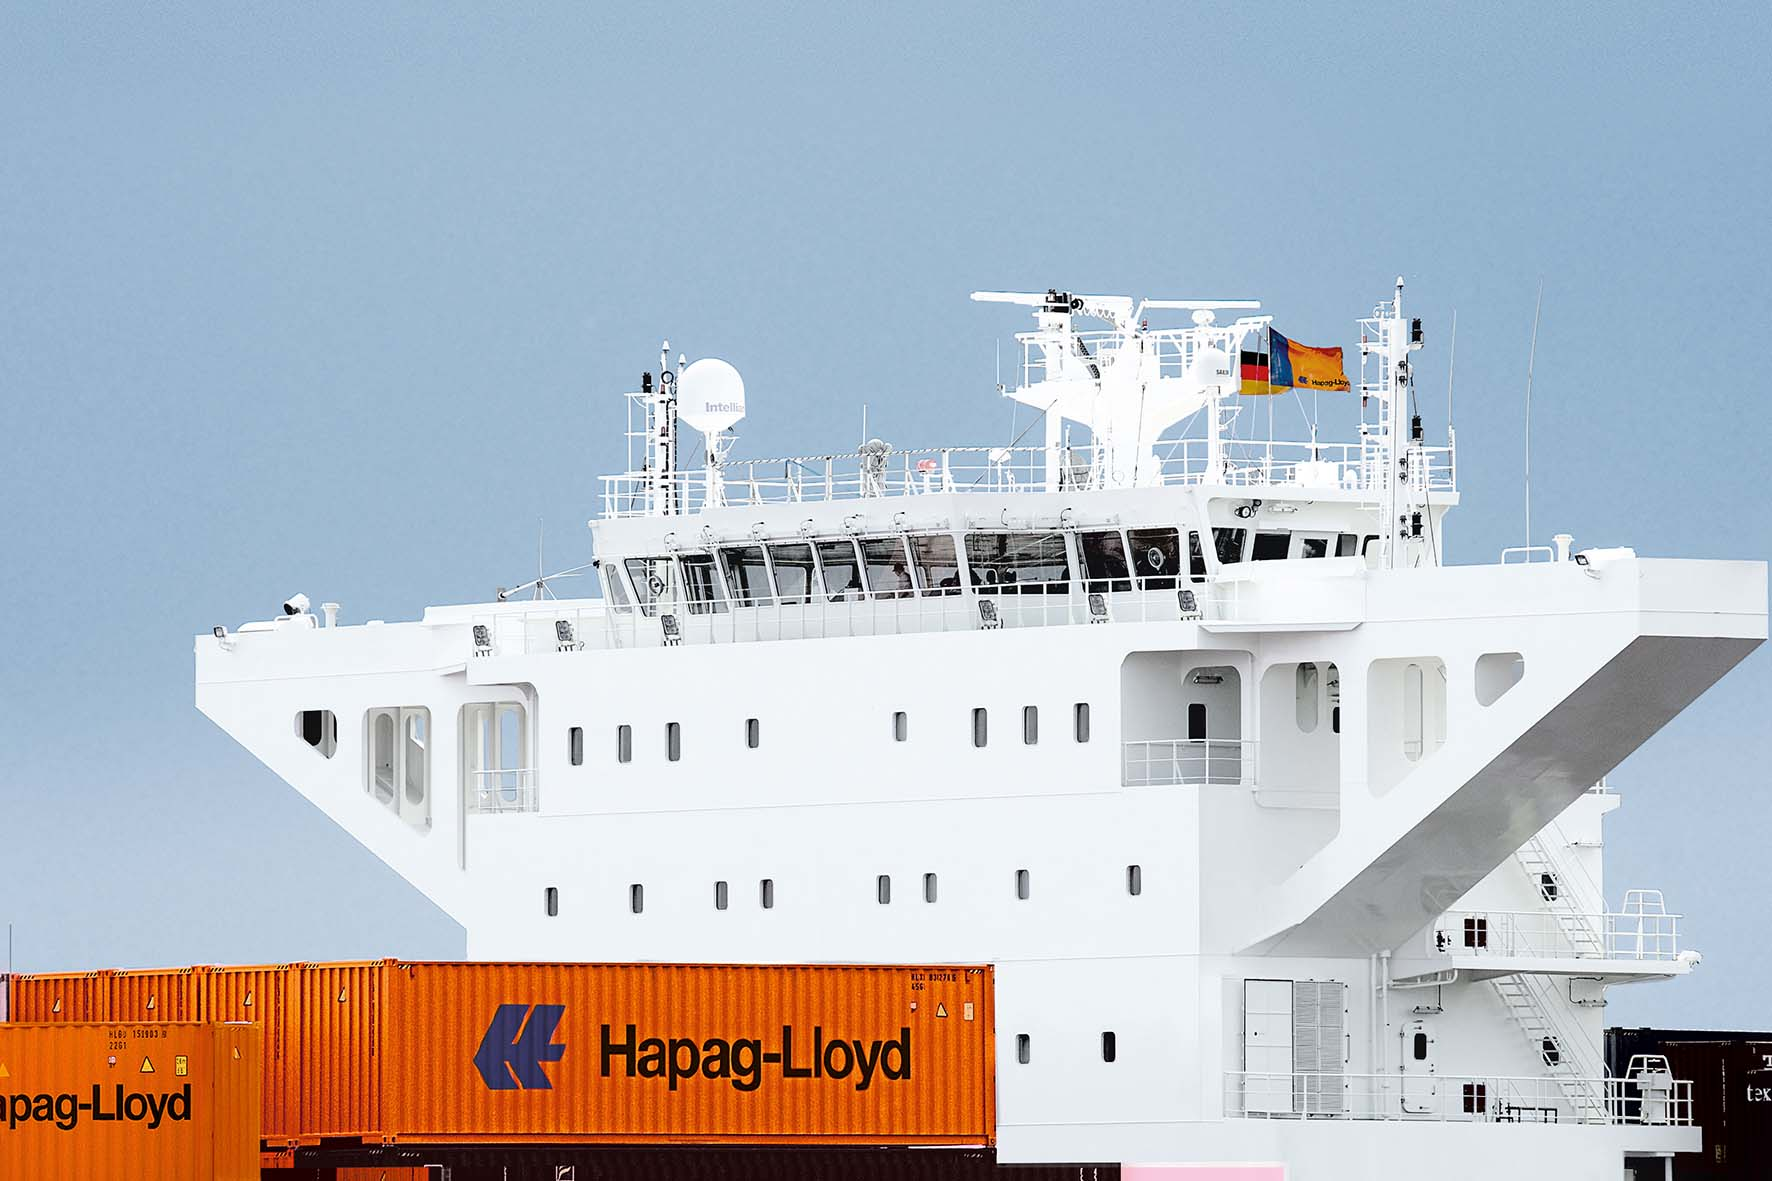 Hapag-Lloyd raises box order to 'counteract the container shortage'